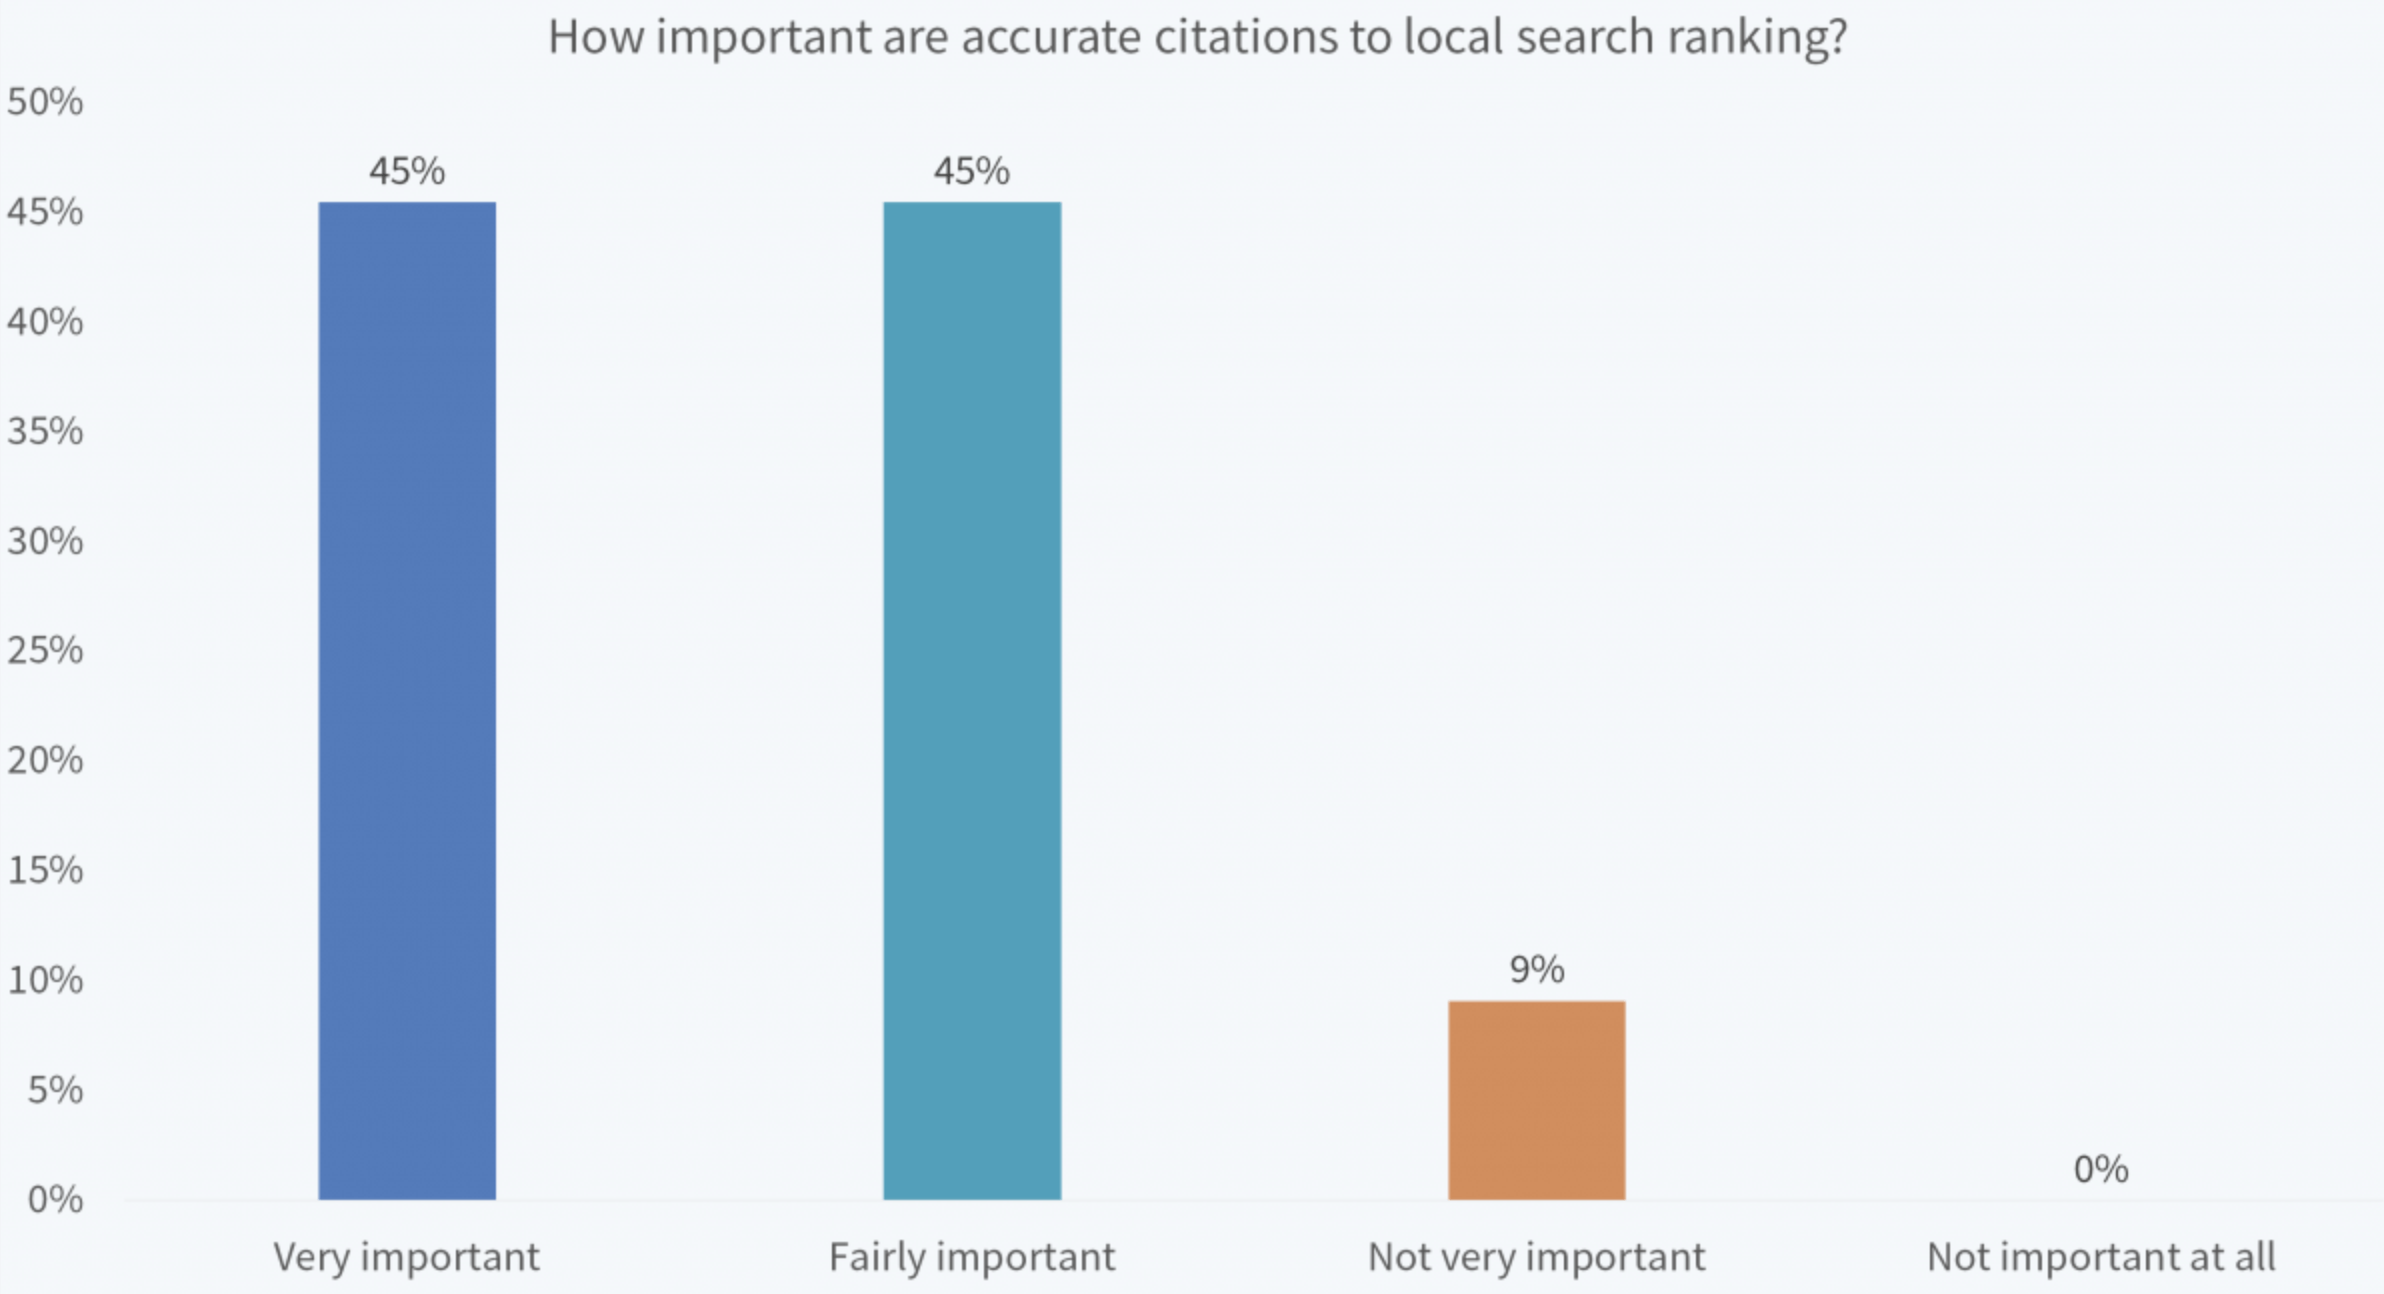 Pest Control Business Citations: Importance in Local Search Rankings